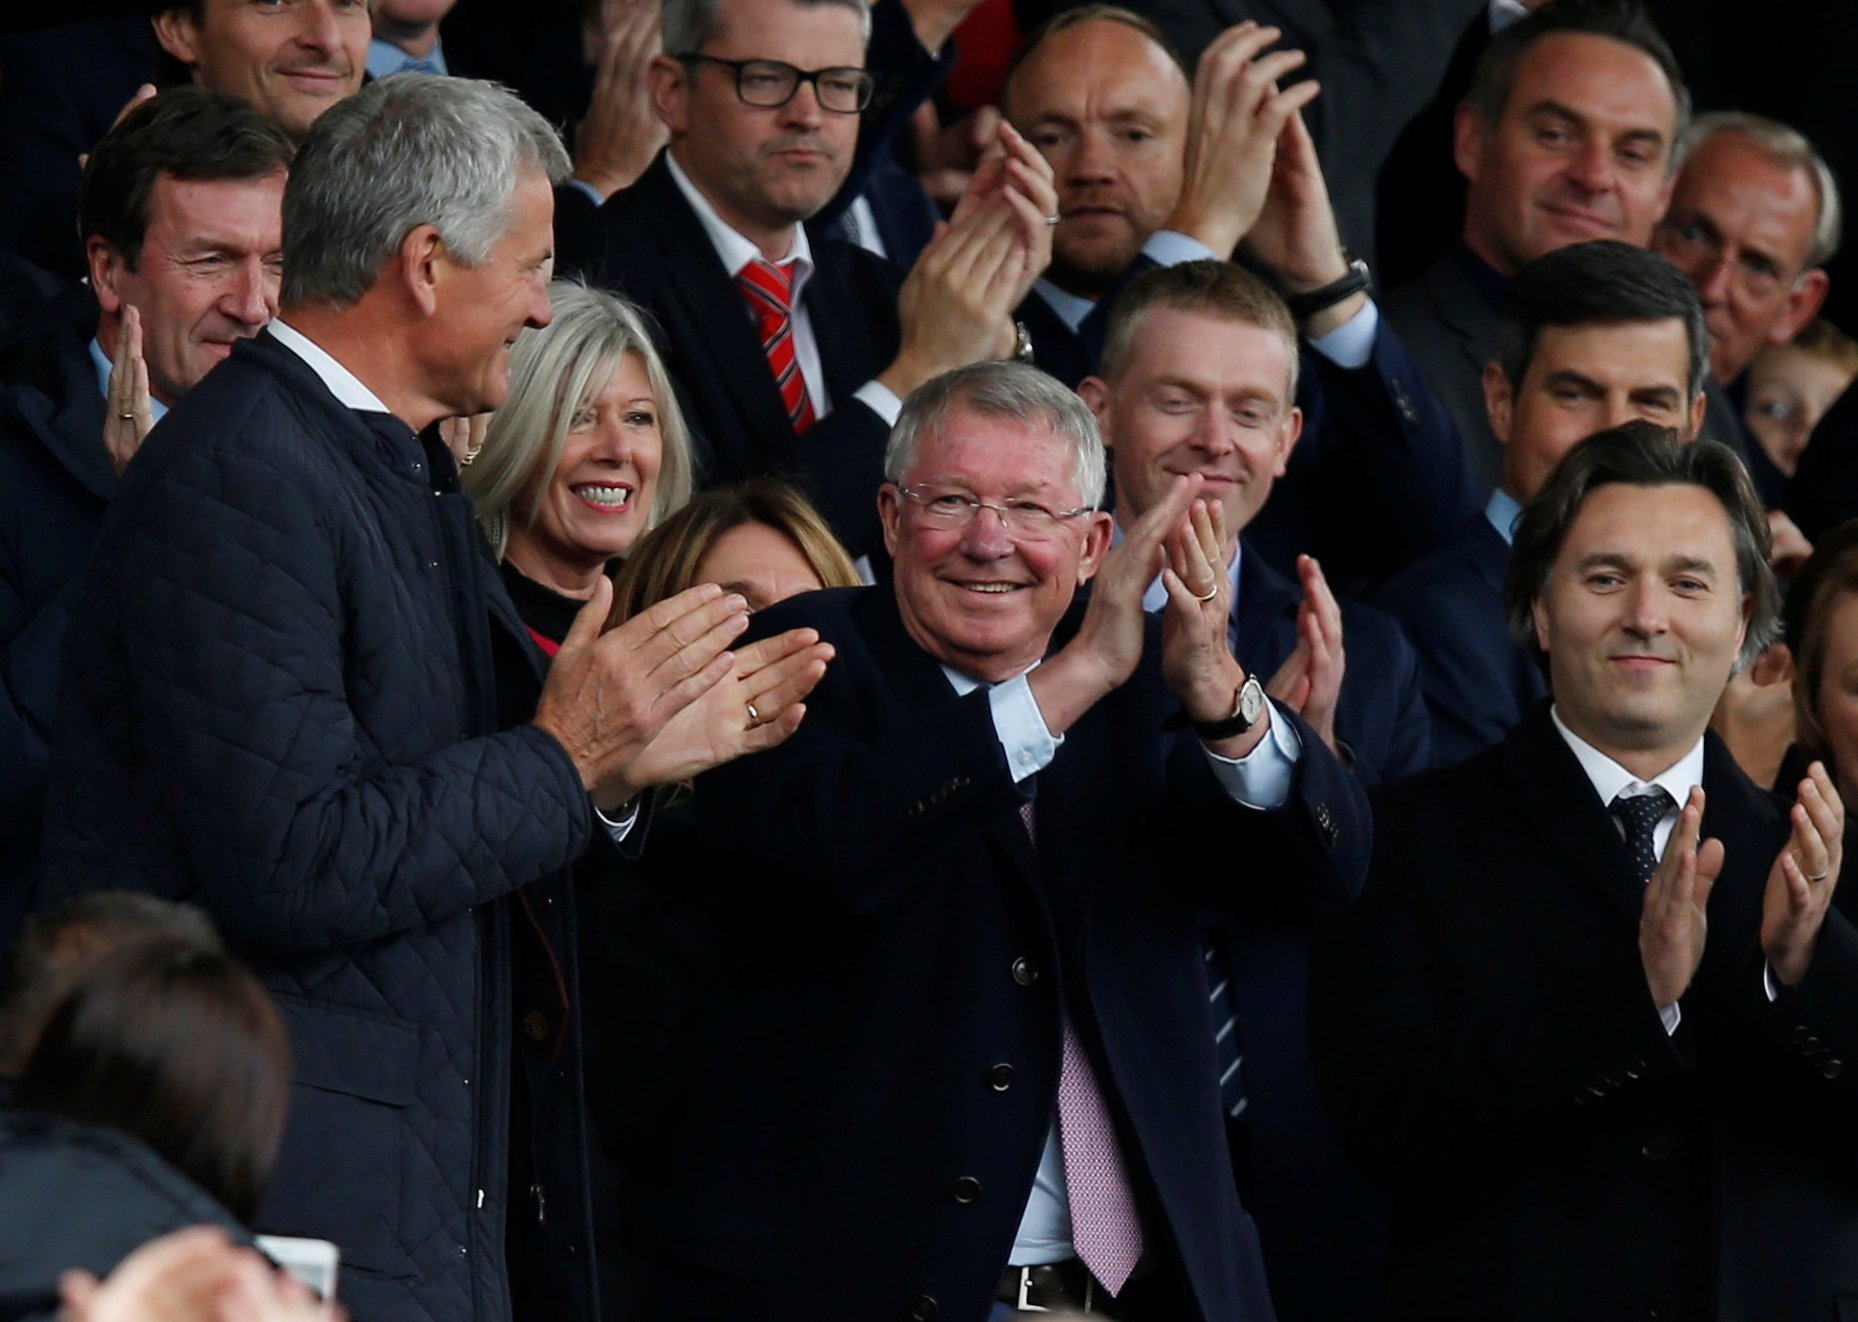 """Soccer Football - Premier League - Manchester United v Wolverhampton Wanderers - Old Trafford, Manchester, Britain - September 22, 2018 Sir Alex Ferguson and FIFA Council vice-president David Gill in the stands before the match REUTERS/Andrew Yates EDITORIAL USE ONLY. No use with unauthorized audio, video, data, fixture lists, club/league logos or """"live"""" services. Online in-match use limited to 75 images, no video emulation. No use in betting, games or single club/league/player publications. Please contact your account representative for further details."""